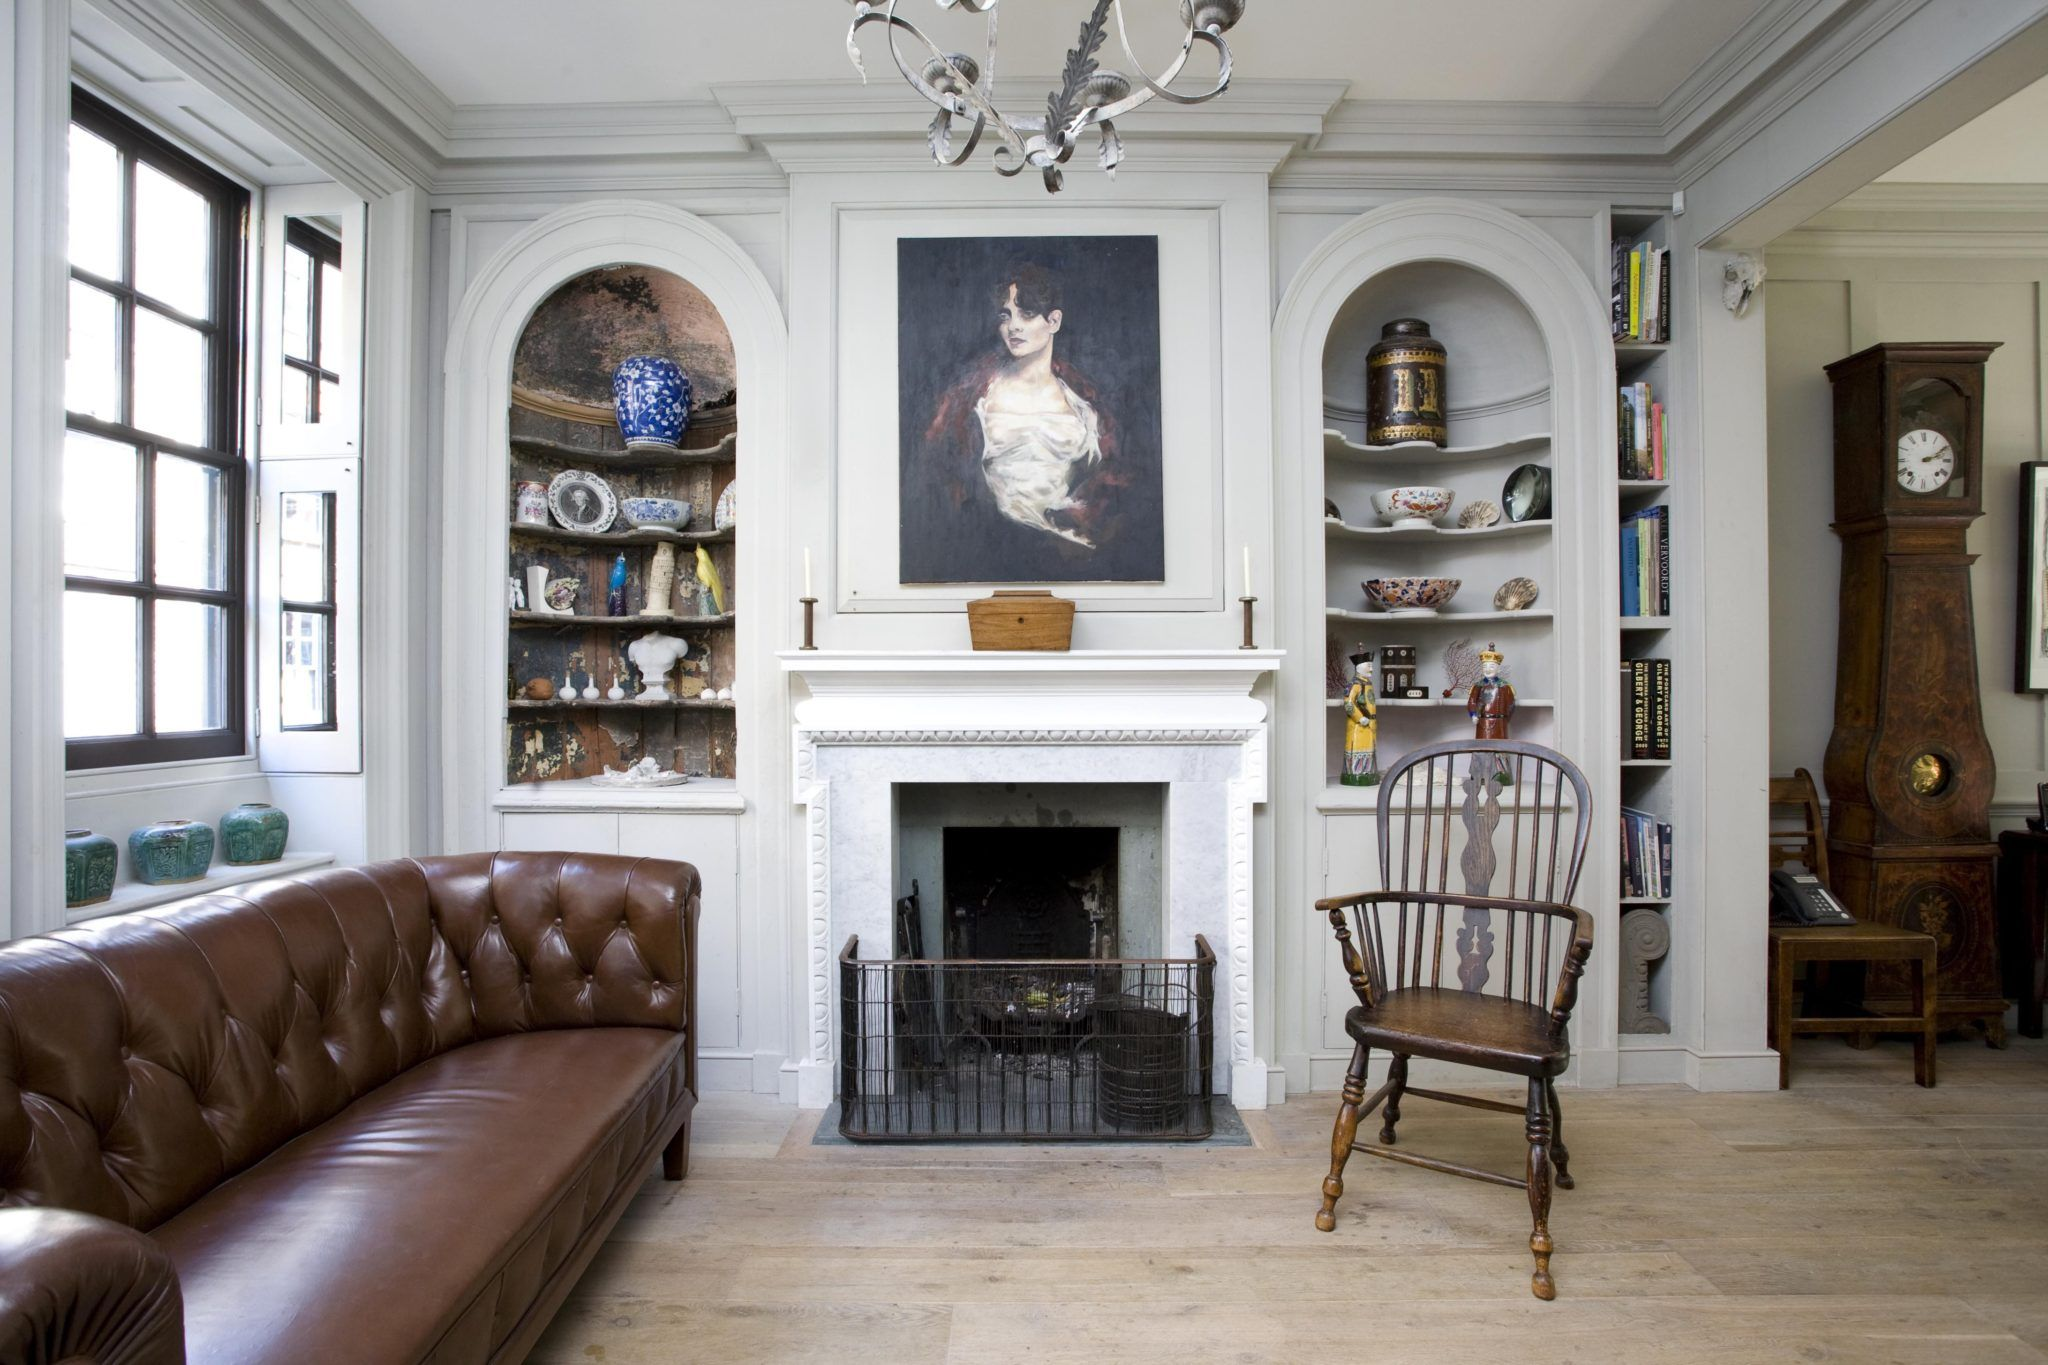 Interior design ideas georgian house